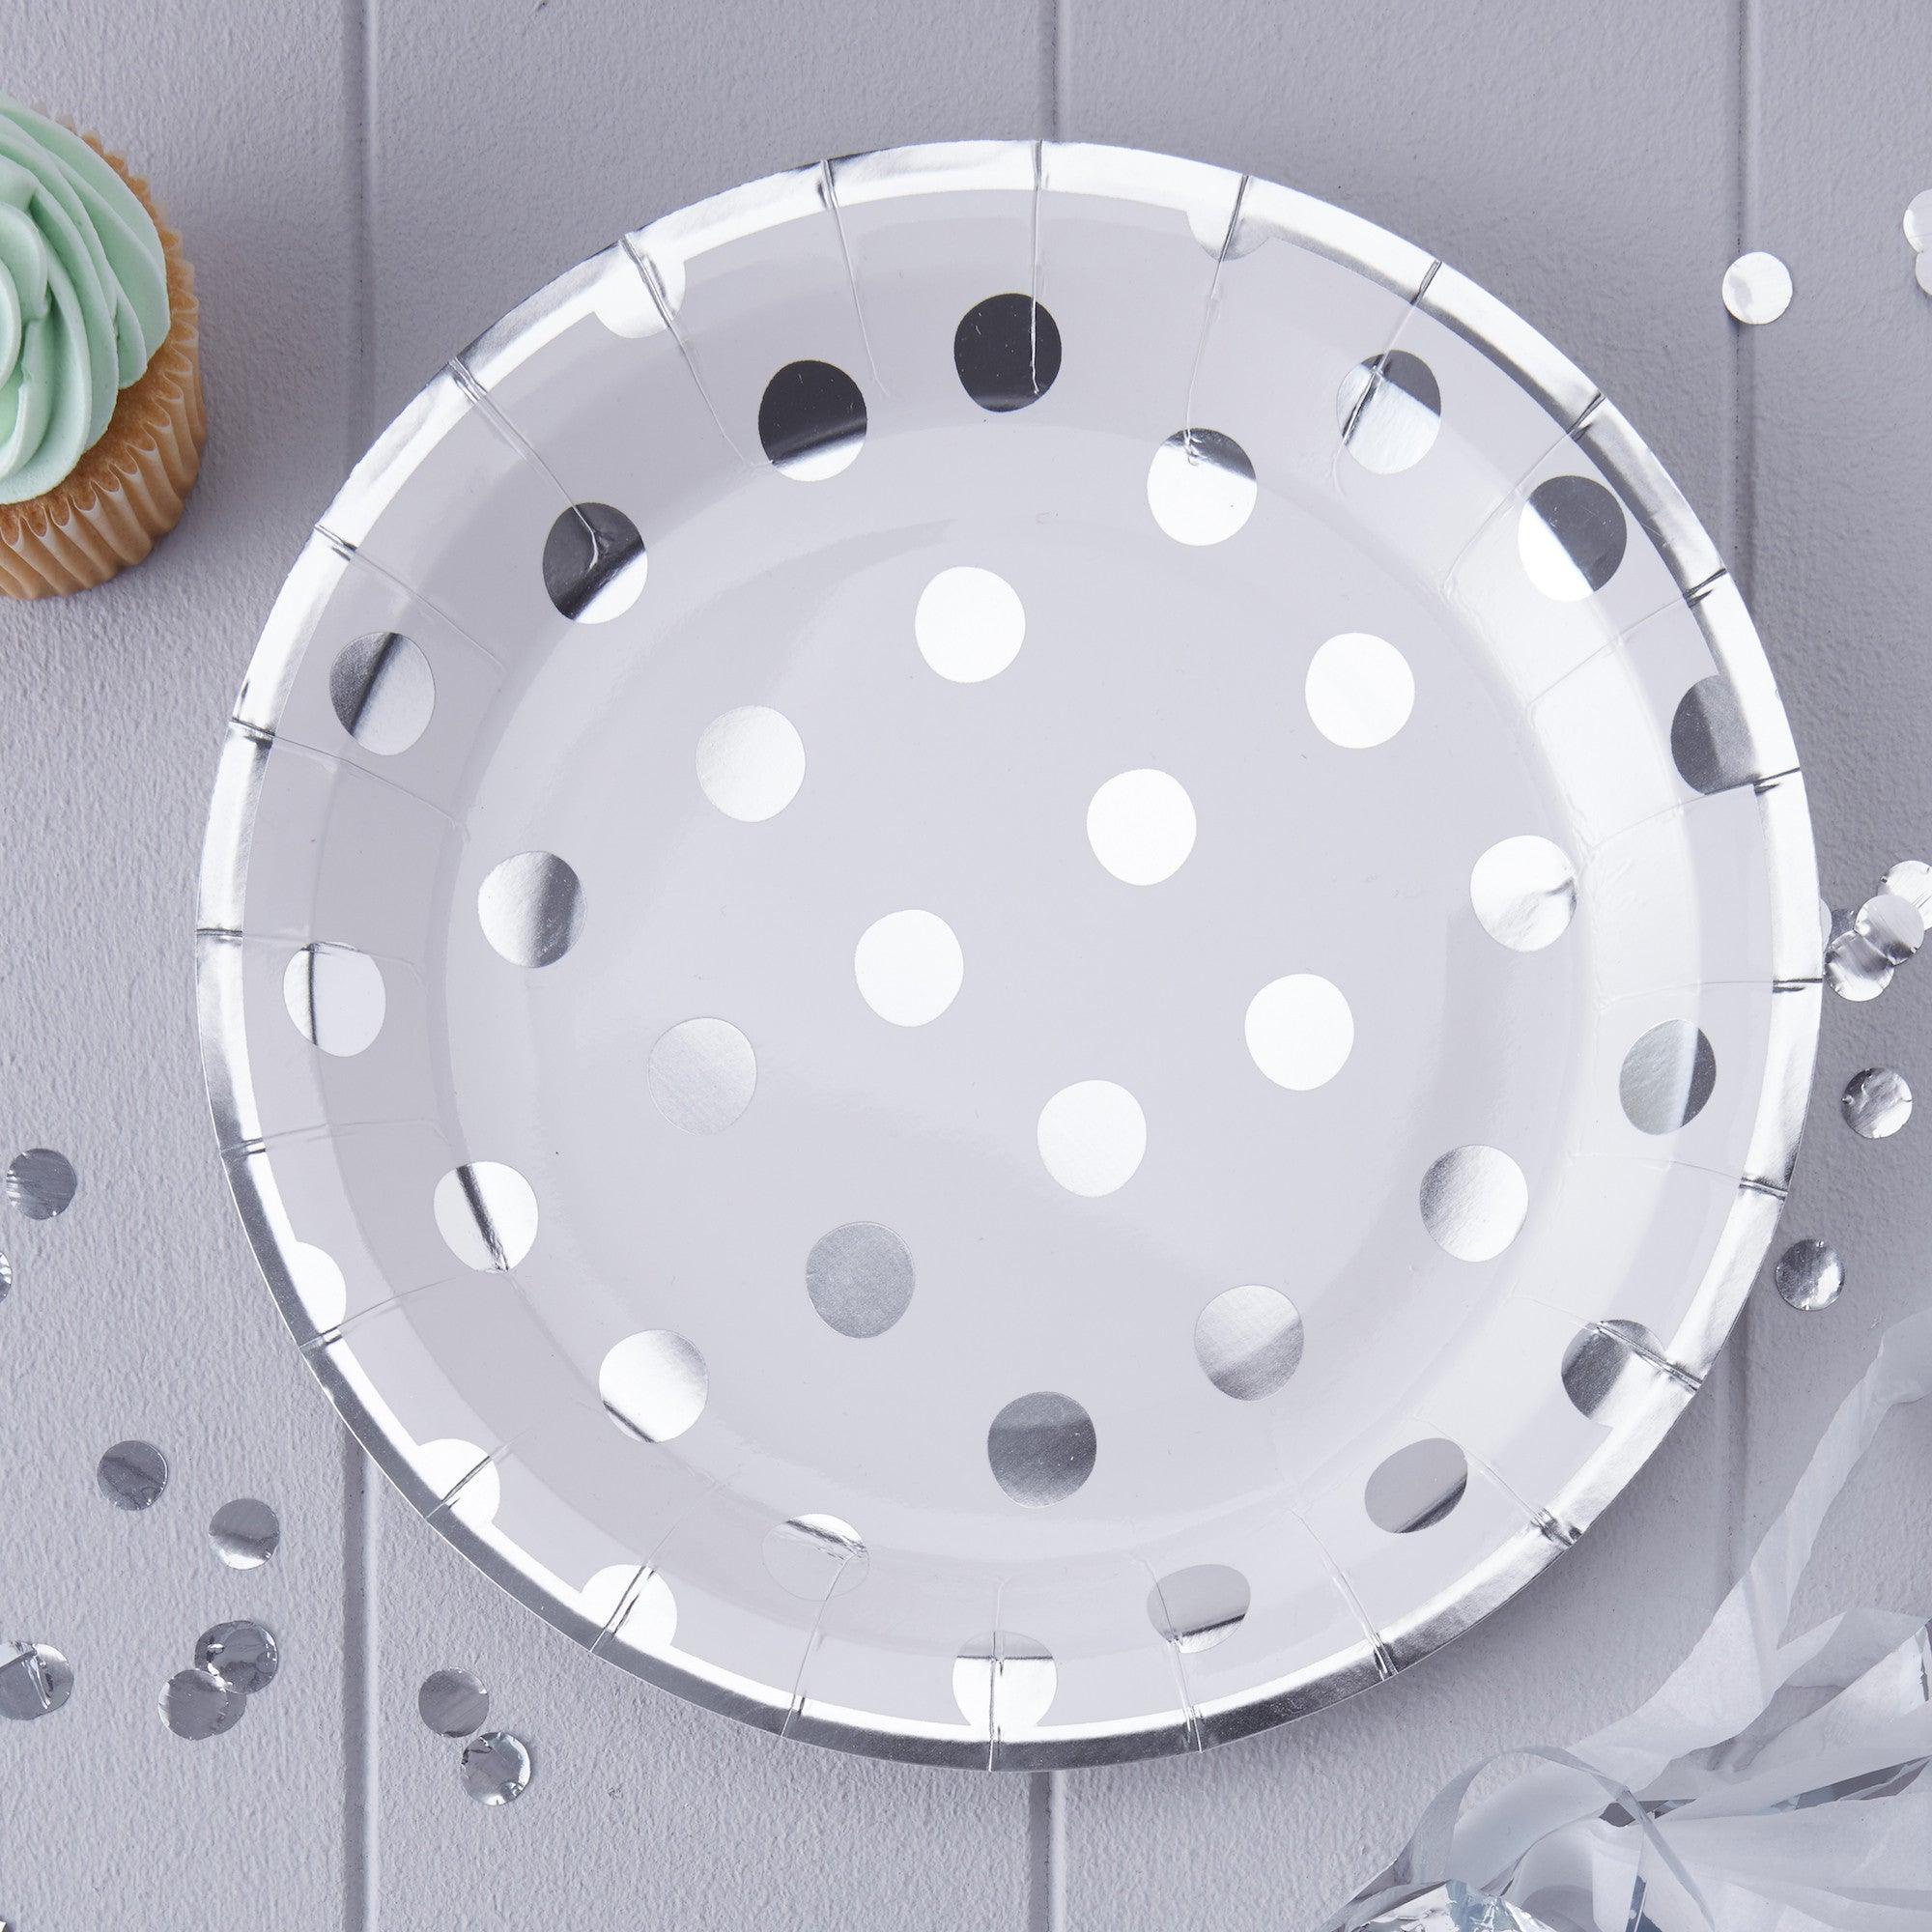 Silver Foiled Polka Dot Paper Plates - The Sweet Hostess